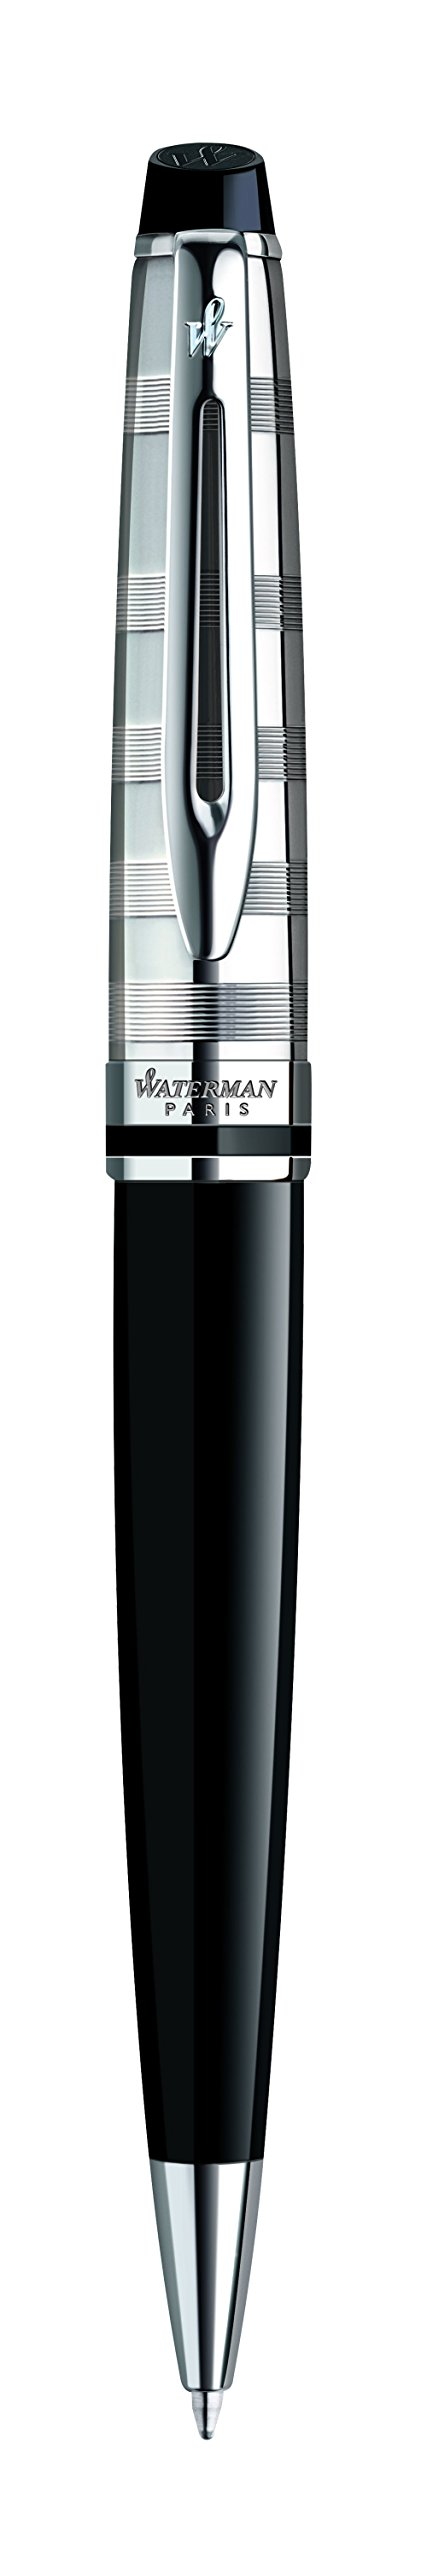 Waterman Expert Deluxe Black, Ballpoint Pen with Medium Blue refill (S0952360) by Waterman (Image #3)